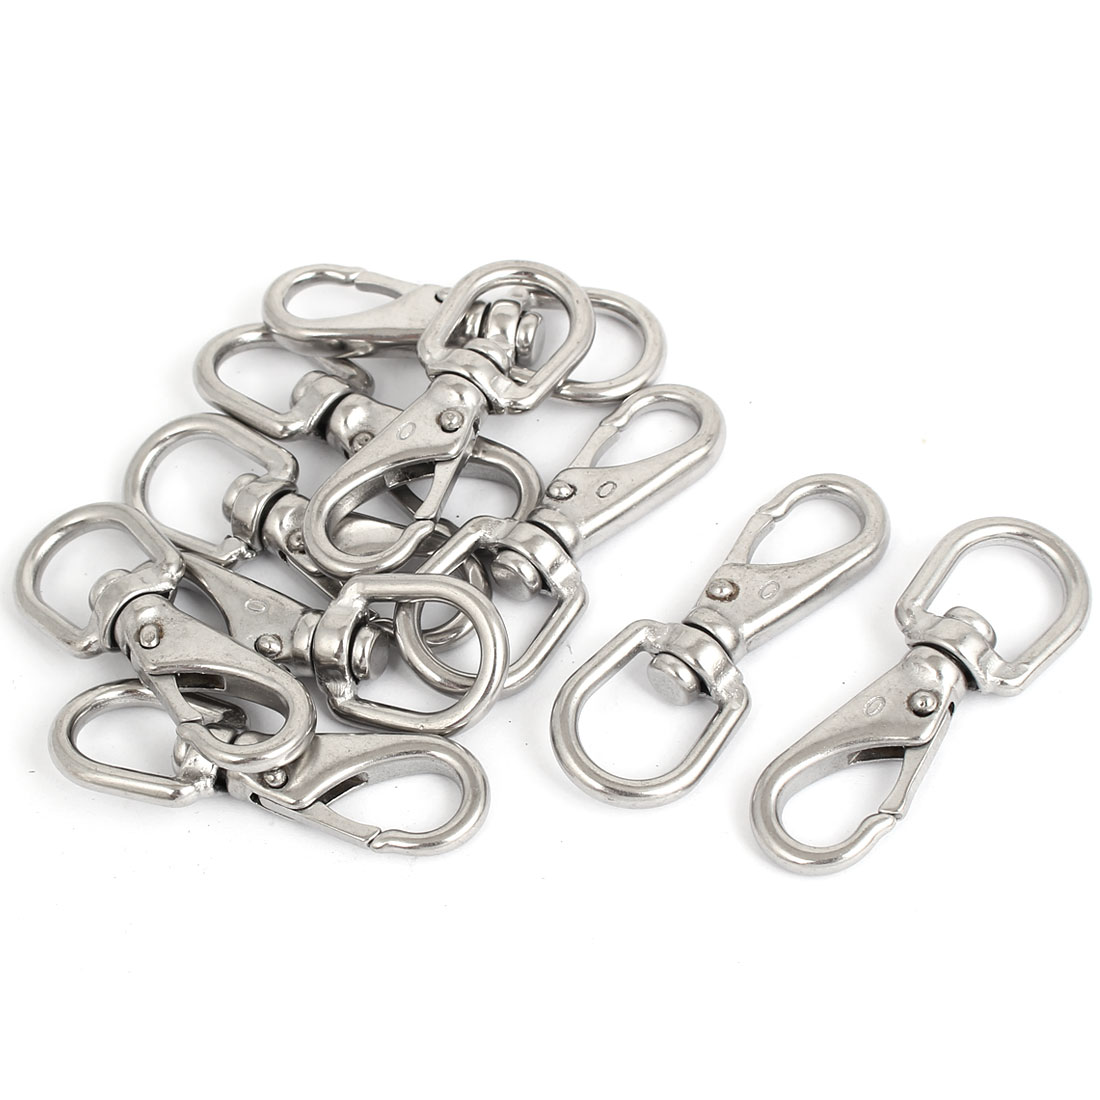 4mm Thickness Stainless Steel Swivel Eye Lobster Snap Clasp Hook 10 Pcs